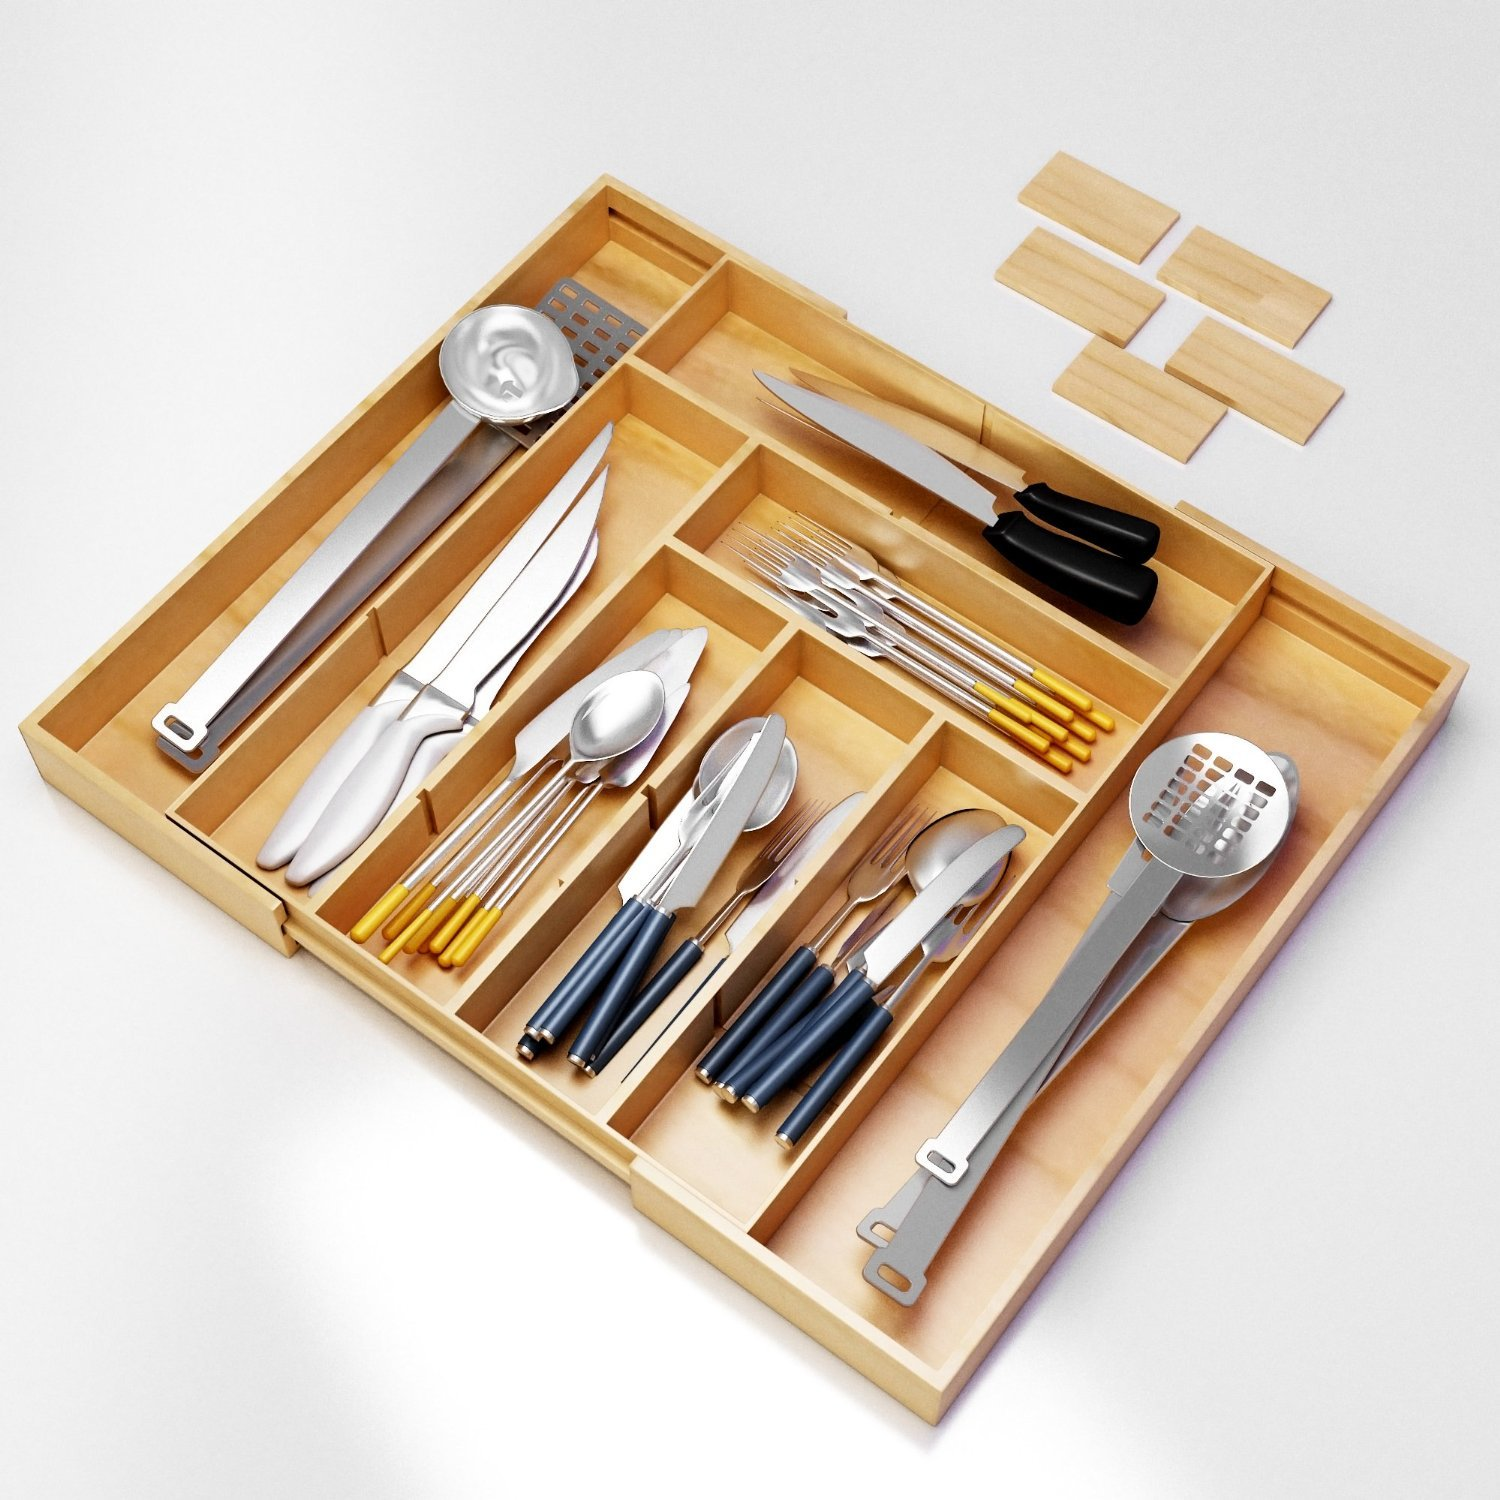 with lid drawer wood walmart flatware narrow silverware organizer target amazon mple strt sert cusm